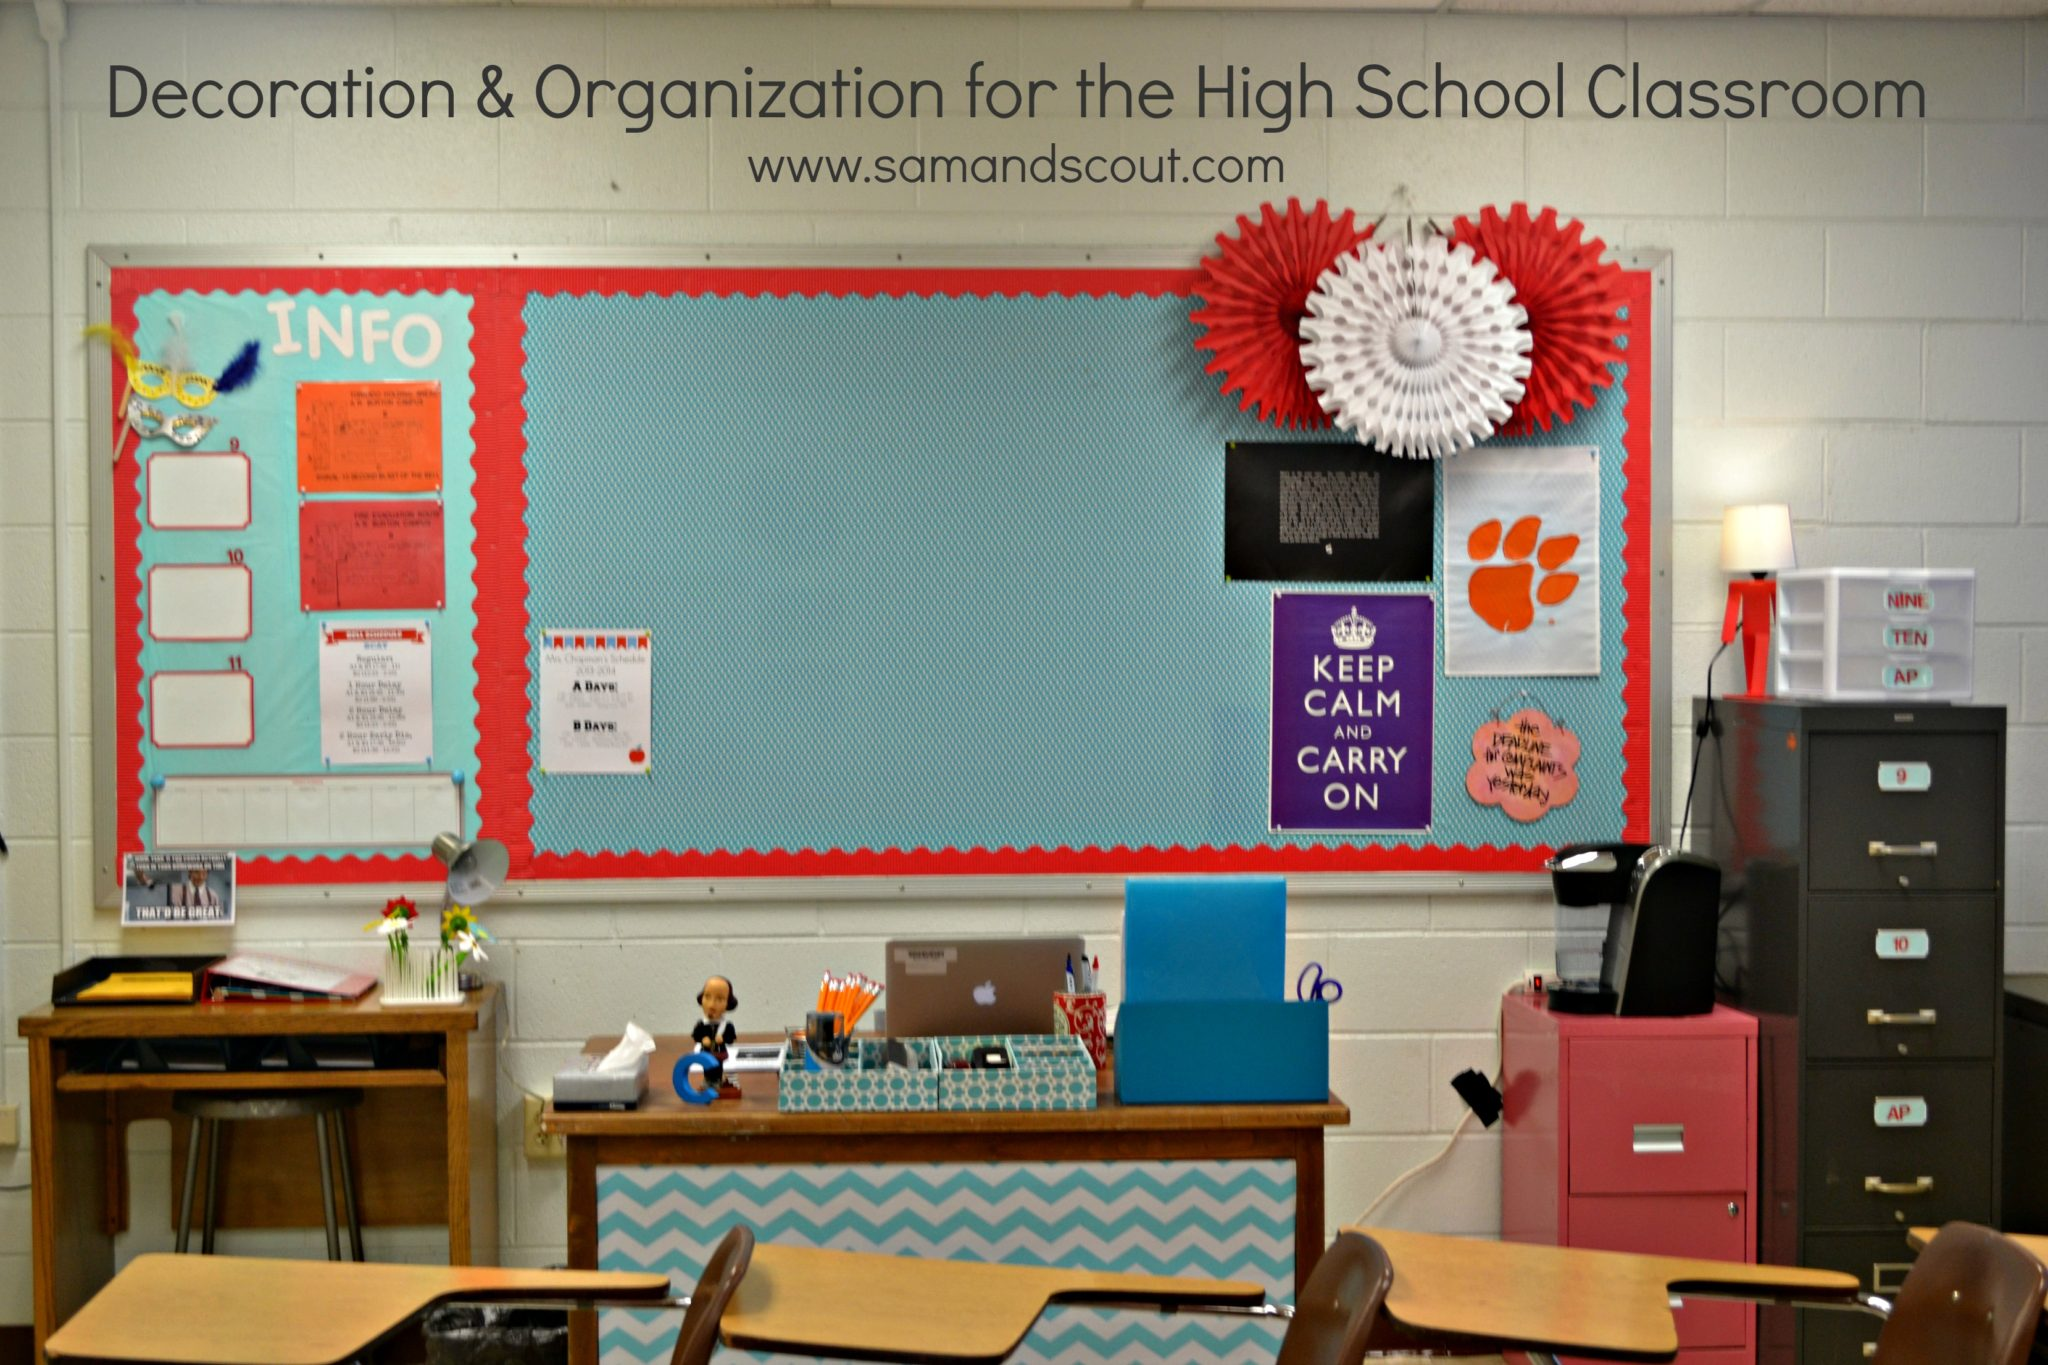 Classroom Layout Ideas High School : Decoration organization for the high school classroom